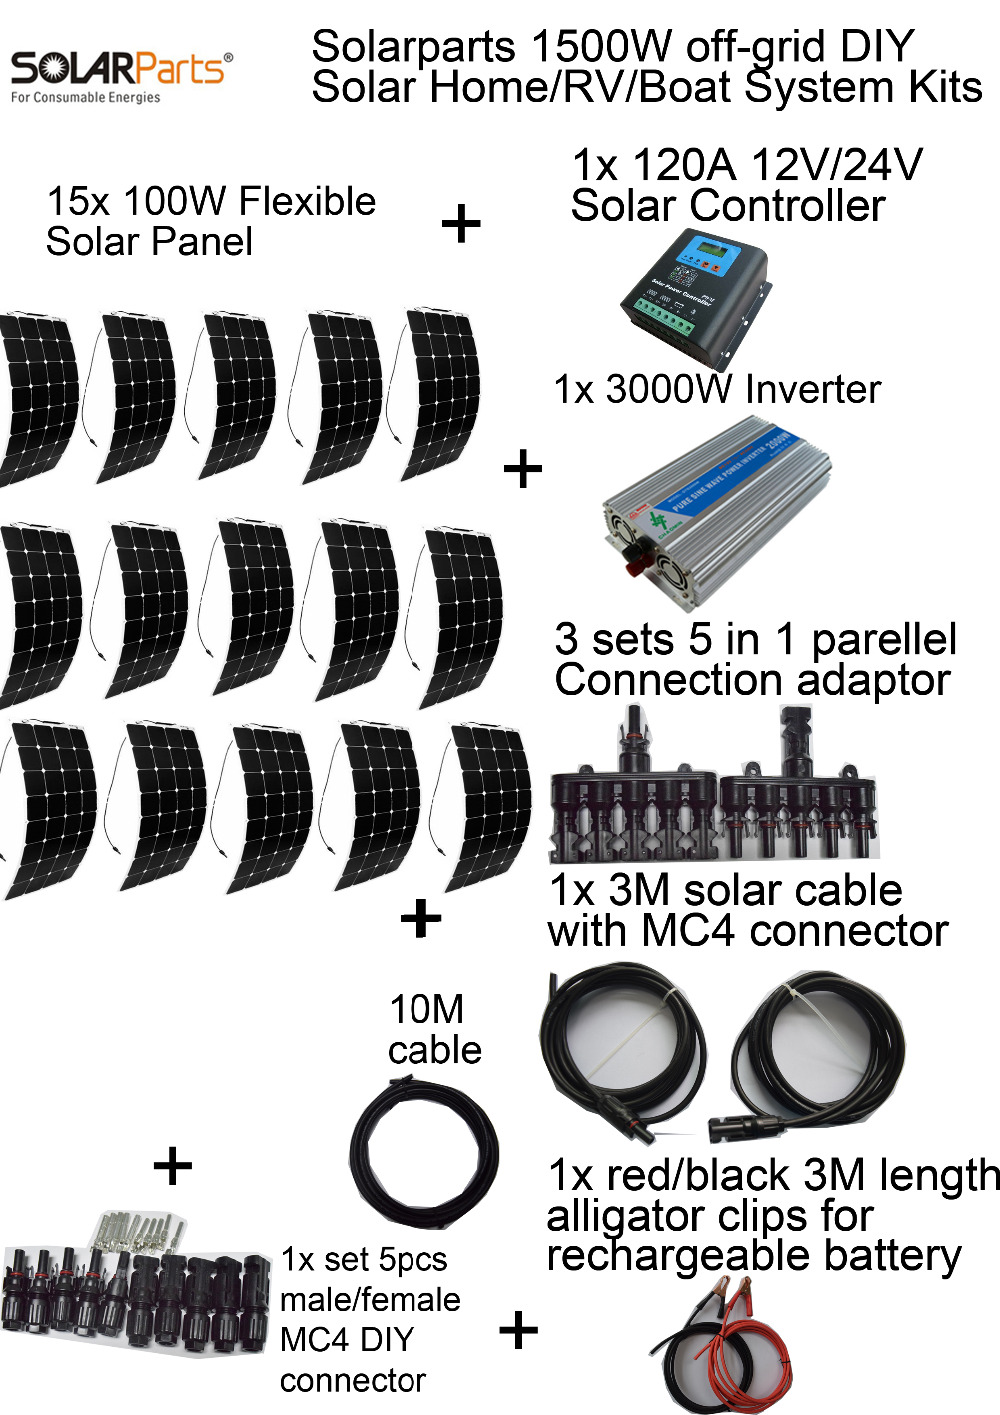 BOGUANG off-grid Photovoltaic system KITS 12v 1500W flexible solar panel ,solar panel system 120A controller 3KW inverter solarparts off grid solar system kits 800w flexible solar panel 1pcs 60a controller 2kw inverter 2 sets 4 in1 mc4 adaptor cable